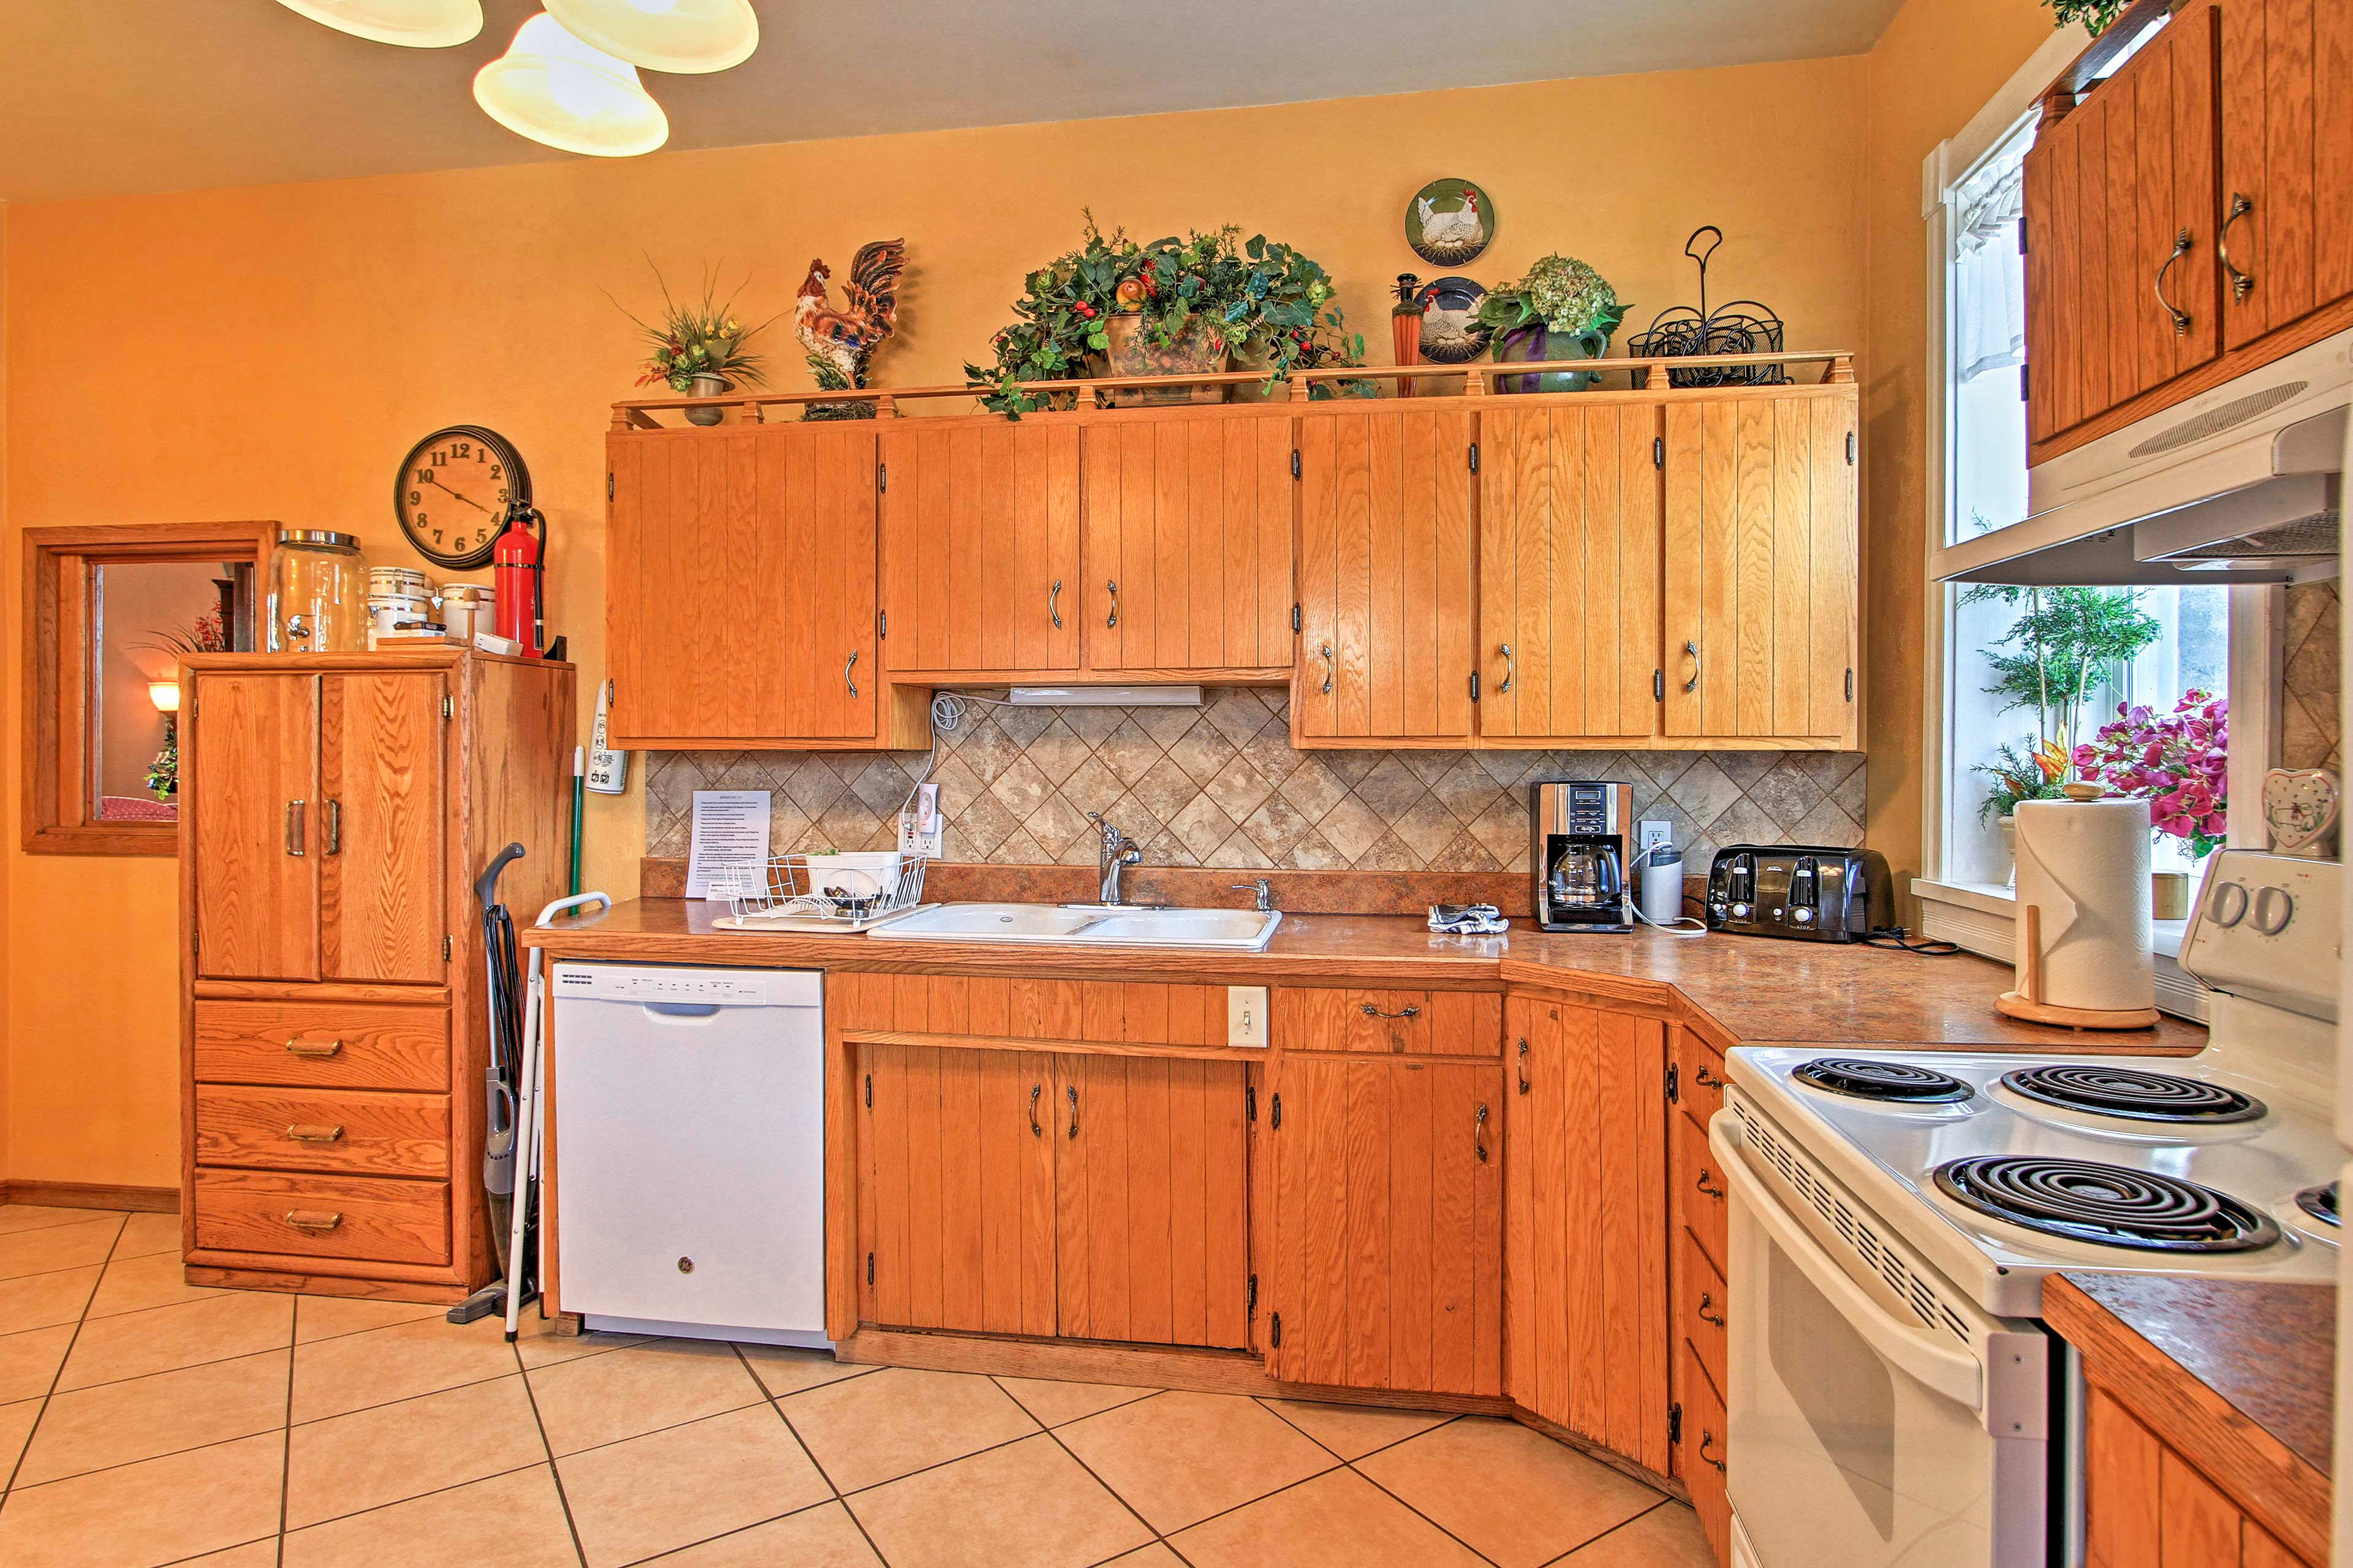 The spacious floor plan allows for multiple chefs to cook simultaneously.